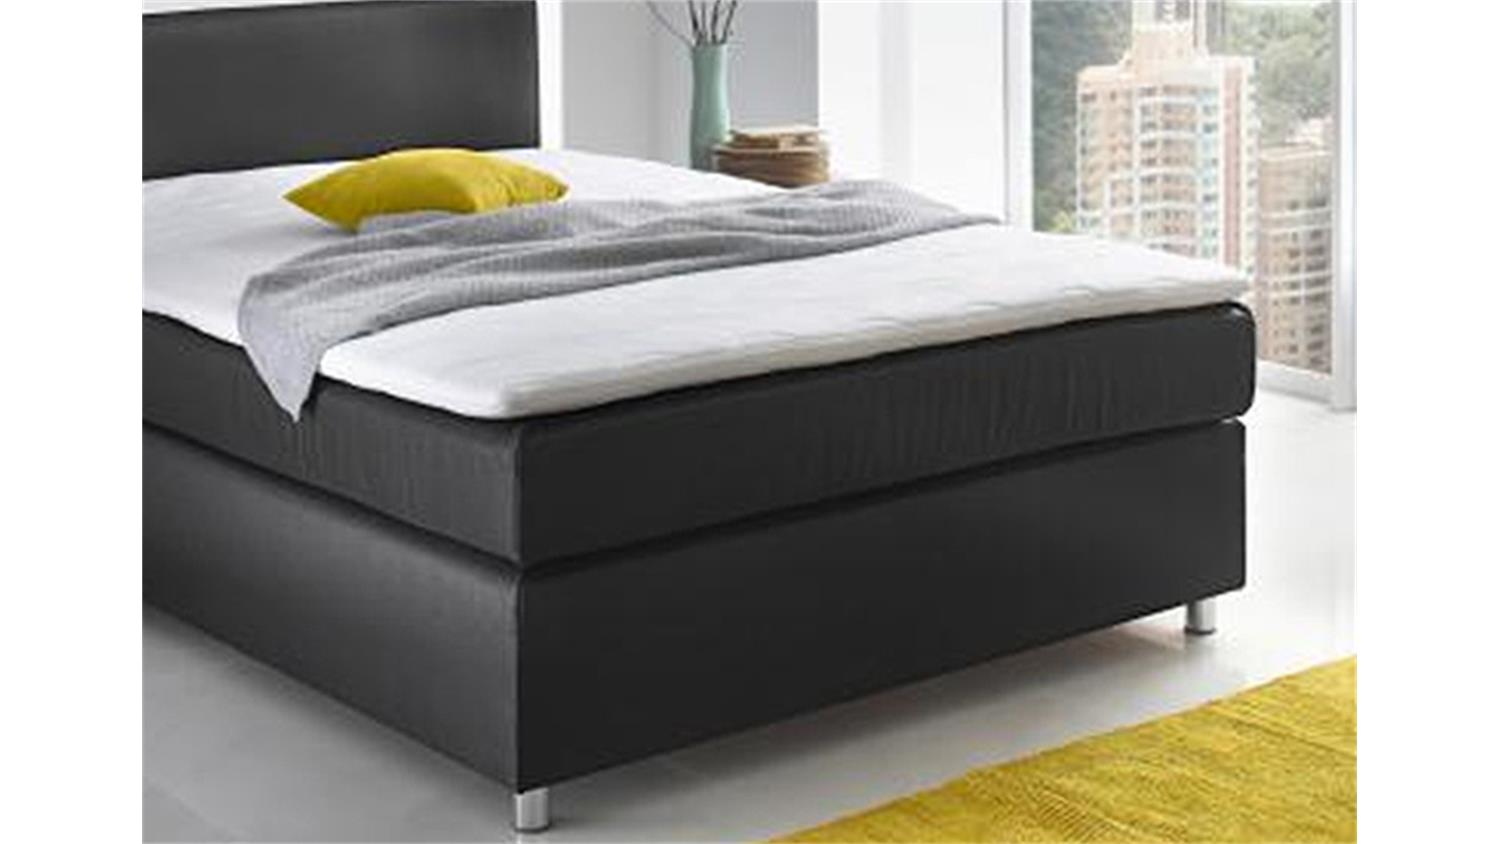 boxspringbett 140x200 mit motor boxspringbett mit motor boxspringbett dunkelbeige mit. Black Bedroom Furniture Sets. Home Design Ideas